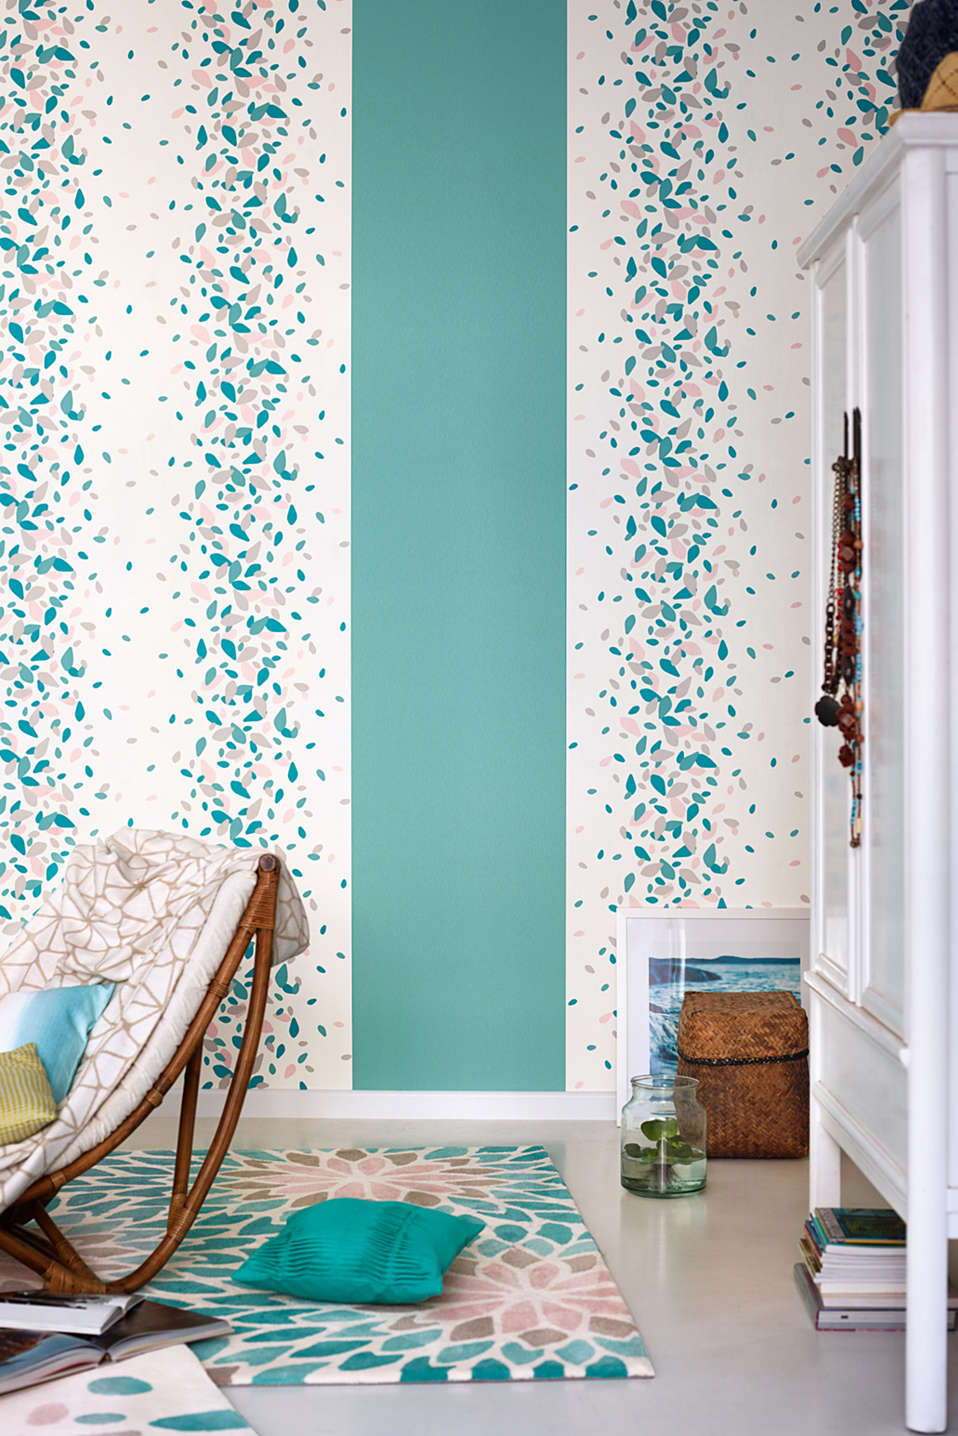 Vlies wallpaper Deep Summer Plain